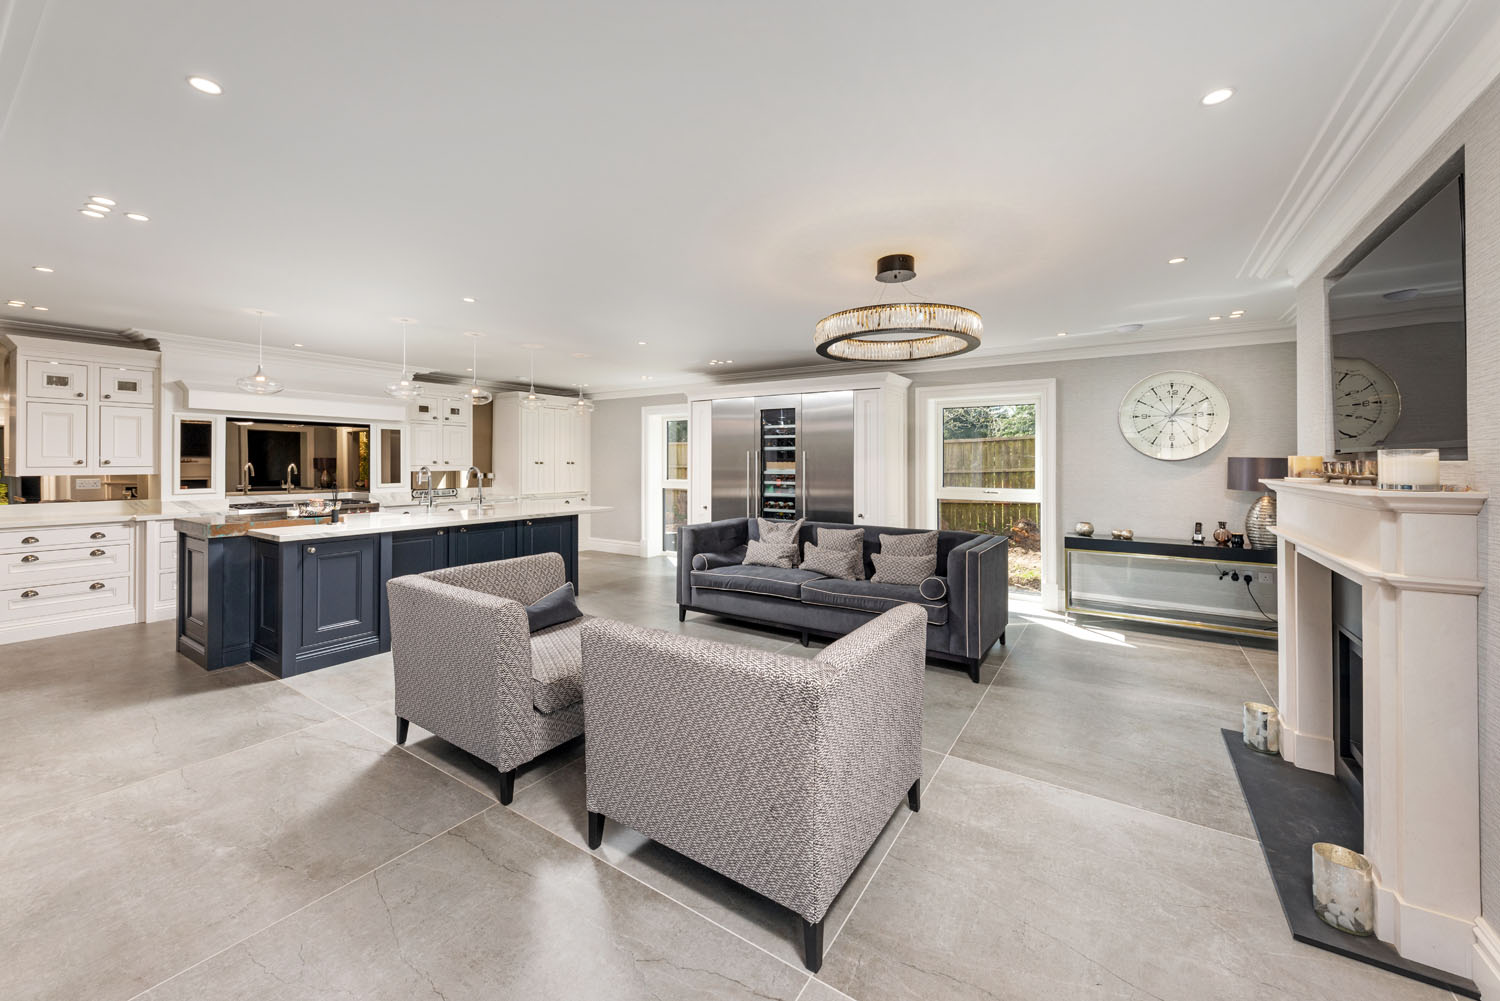 Image of 01 in Dekton Flooring and Kitchen Worksurfaces Add Timeless Elegance to This Classic Family Home - Cosentino